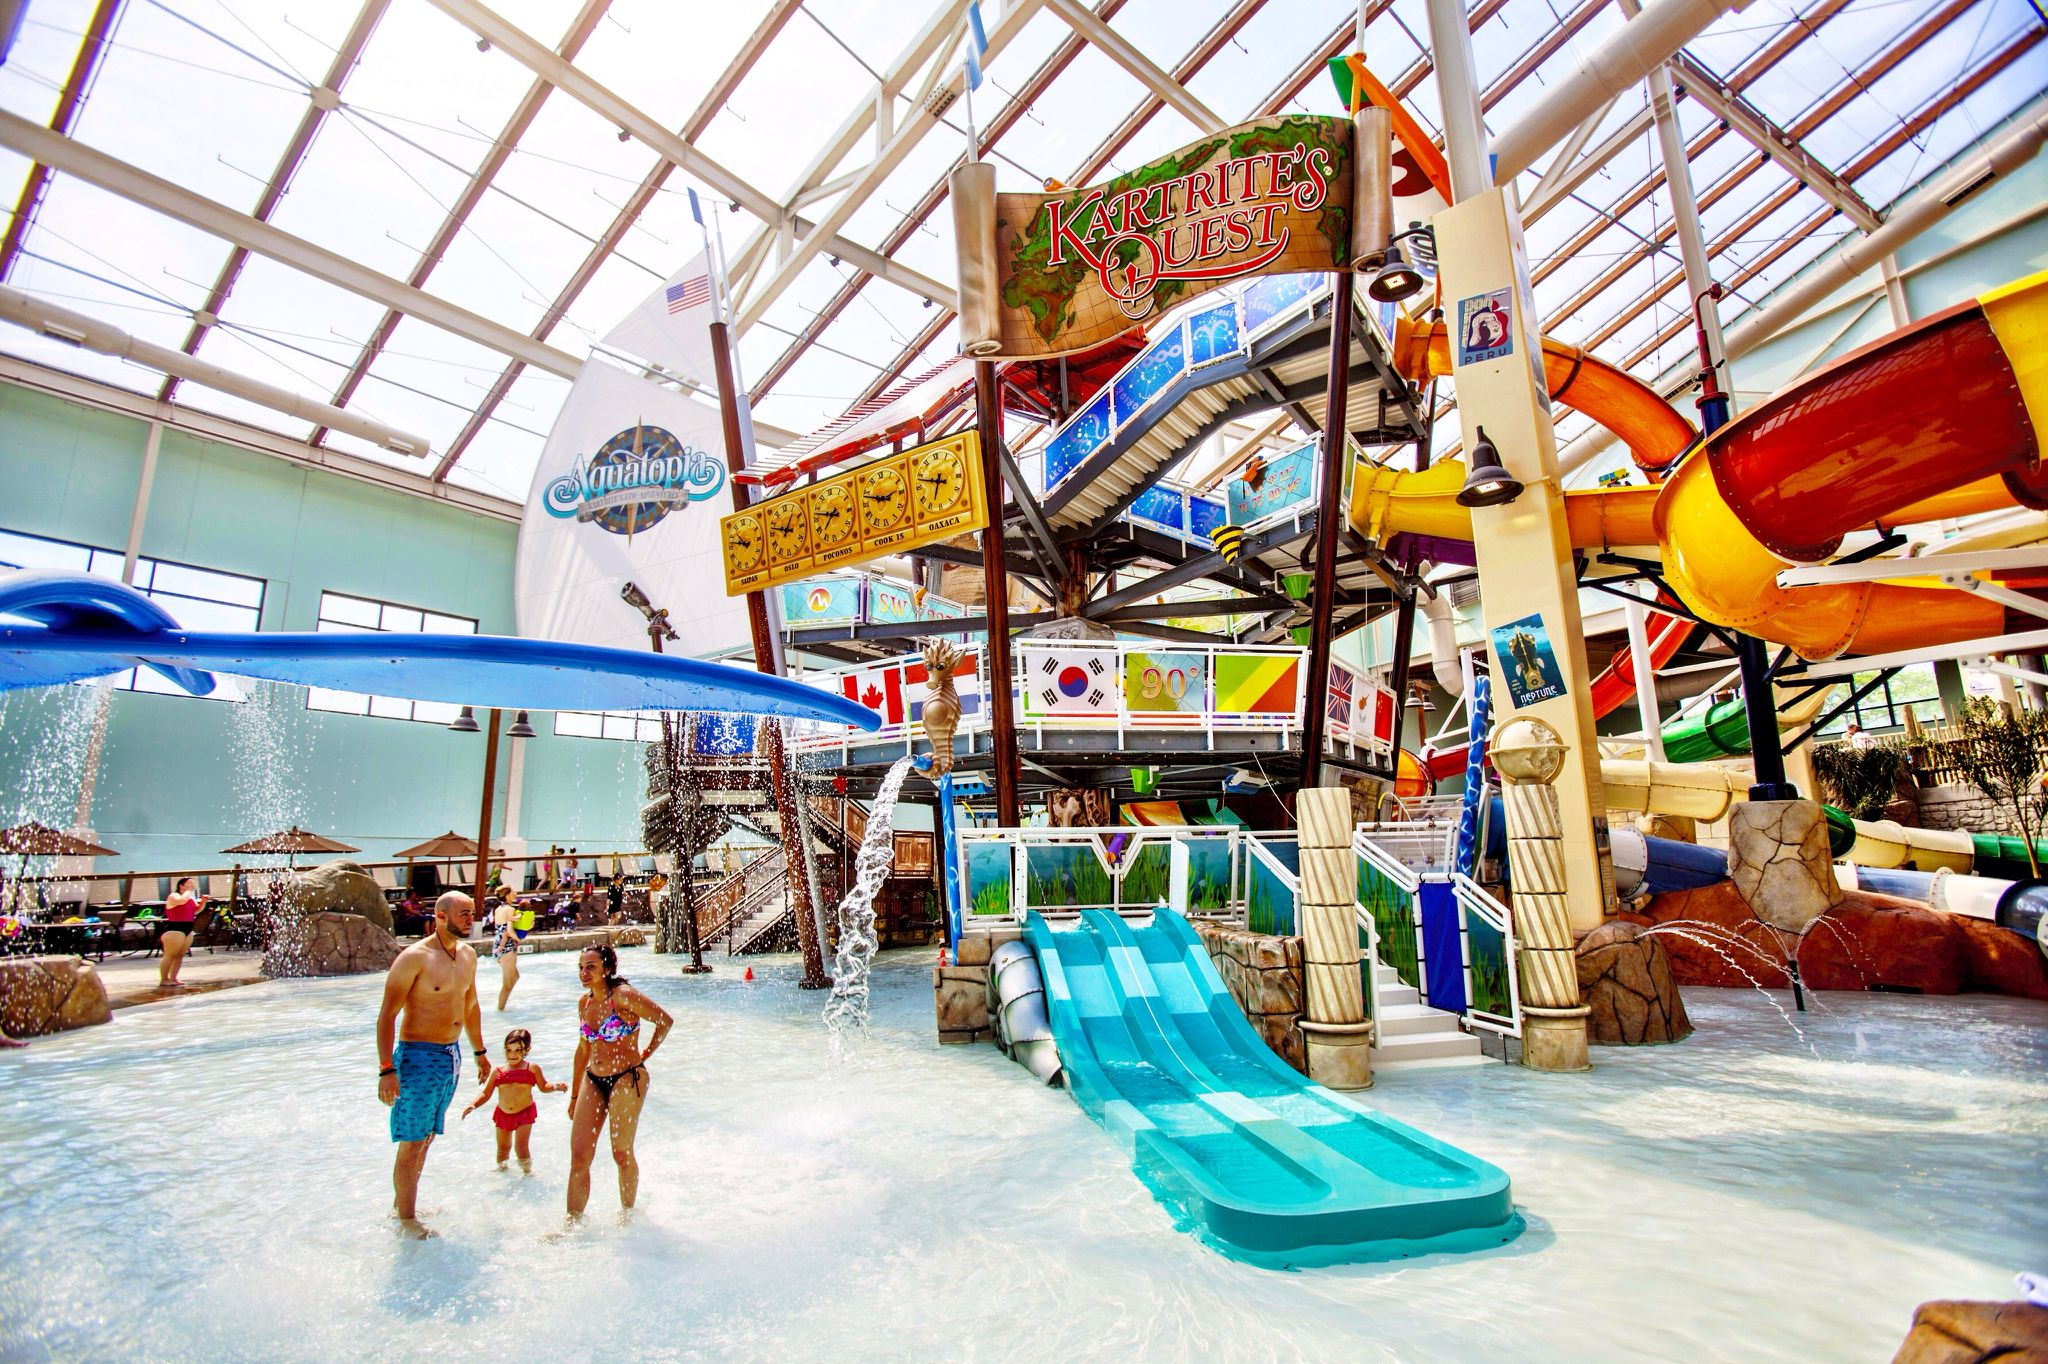 Six Water Slides On Kartrite S Quest Means Endless Fun For All Ages Aquatopia Water Parks In Pa Indoor Waterpark Water Park